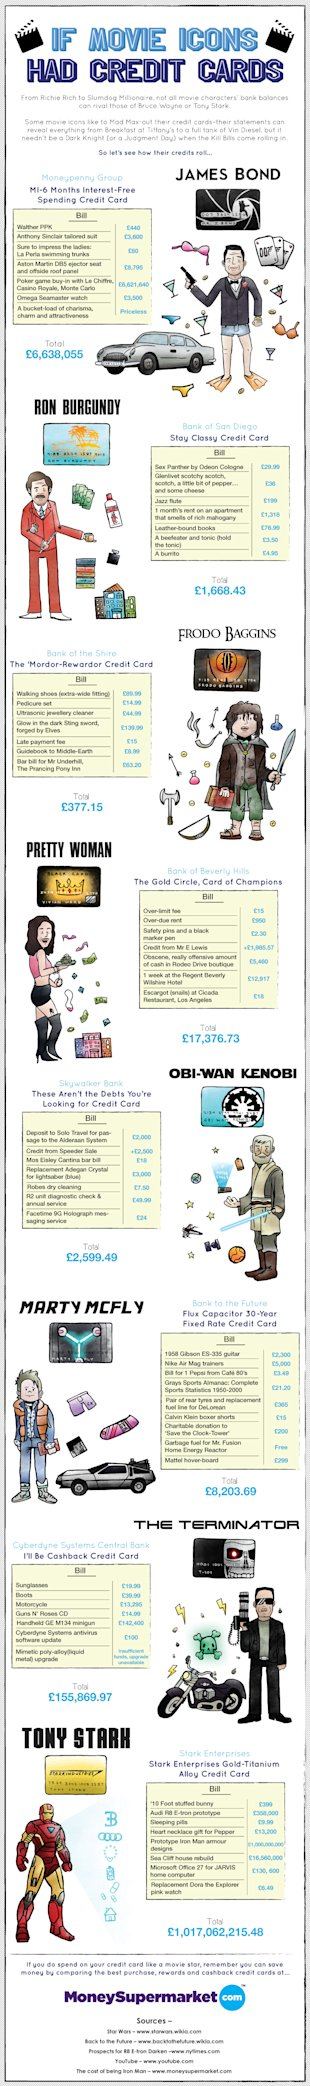 If Movie Icons Had Credit Cards Infographic image movie icons